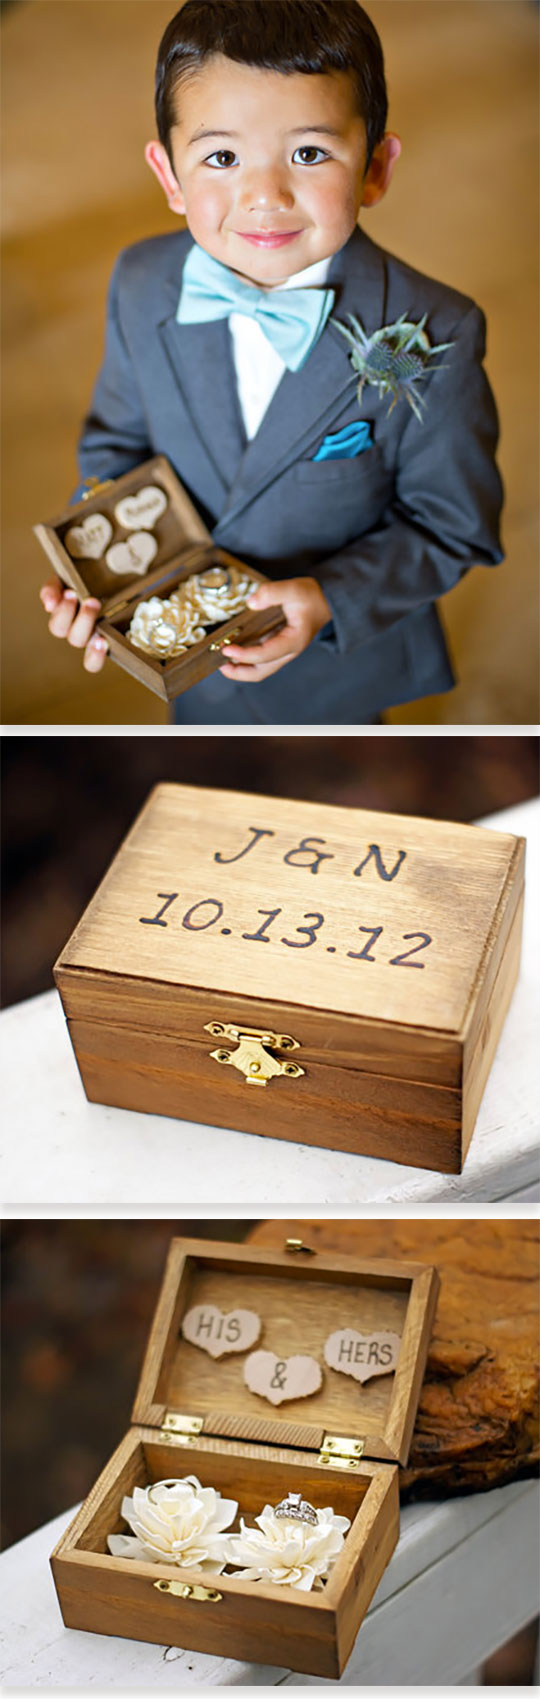 Engraved rustic wood ring bearer box with his and hers hearts on inside lid and stylish flowers to hold the rings. Scroll to number 18 on the page.